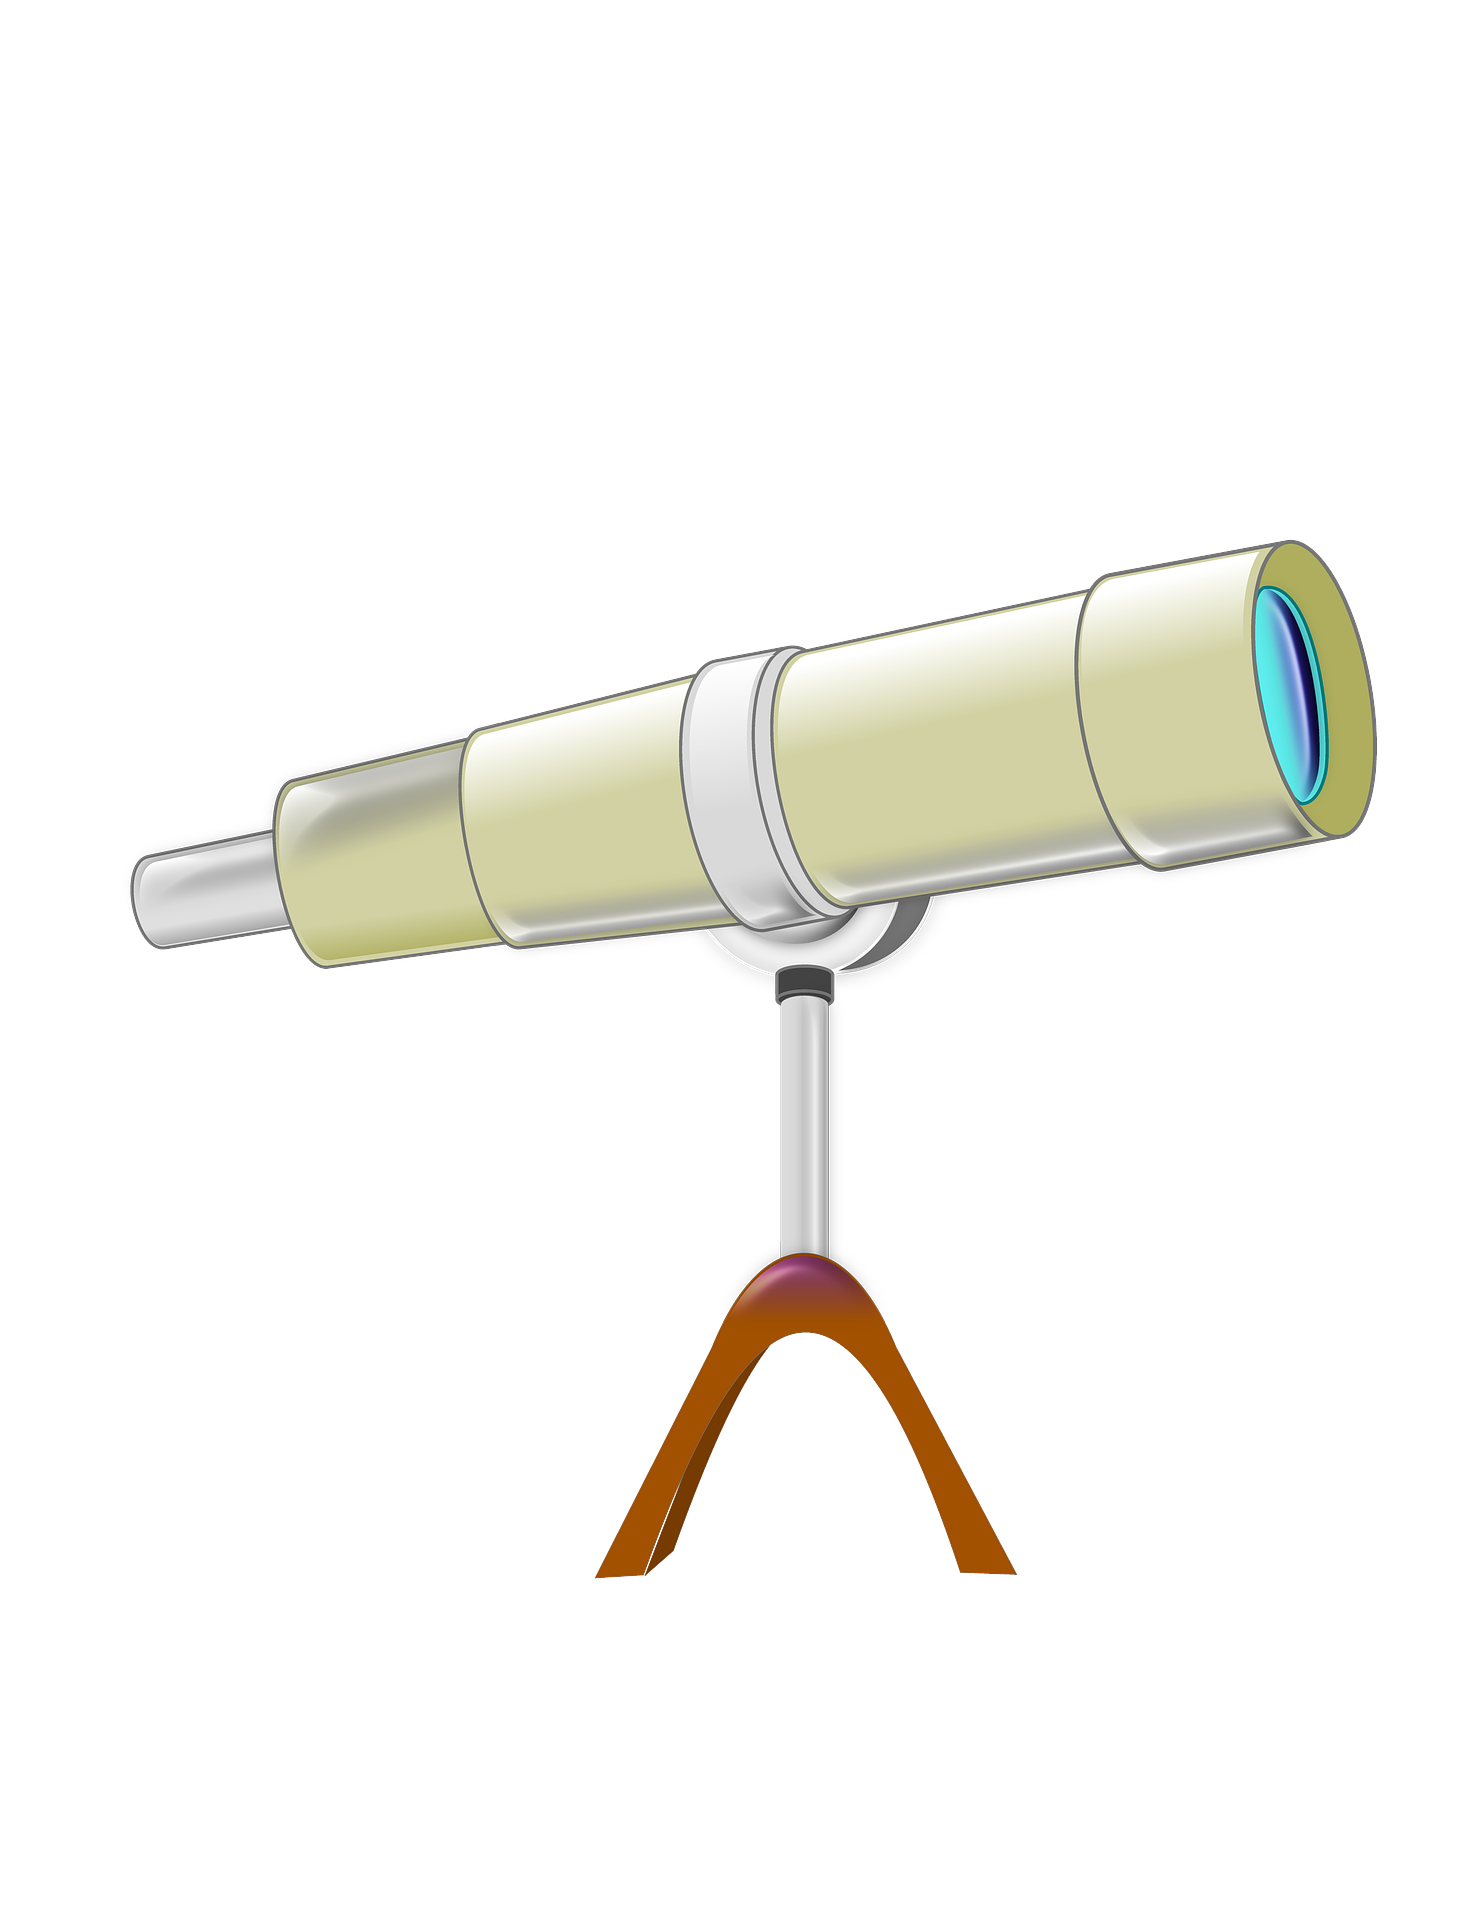 galileo facts for kids cool kid facts telescope 497671 1920